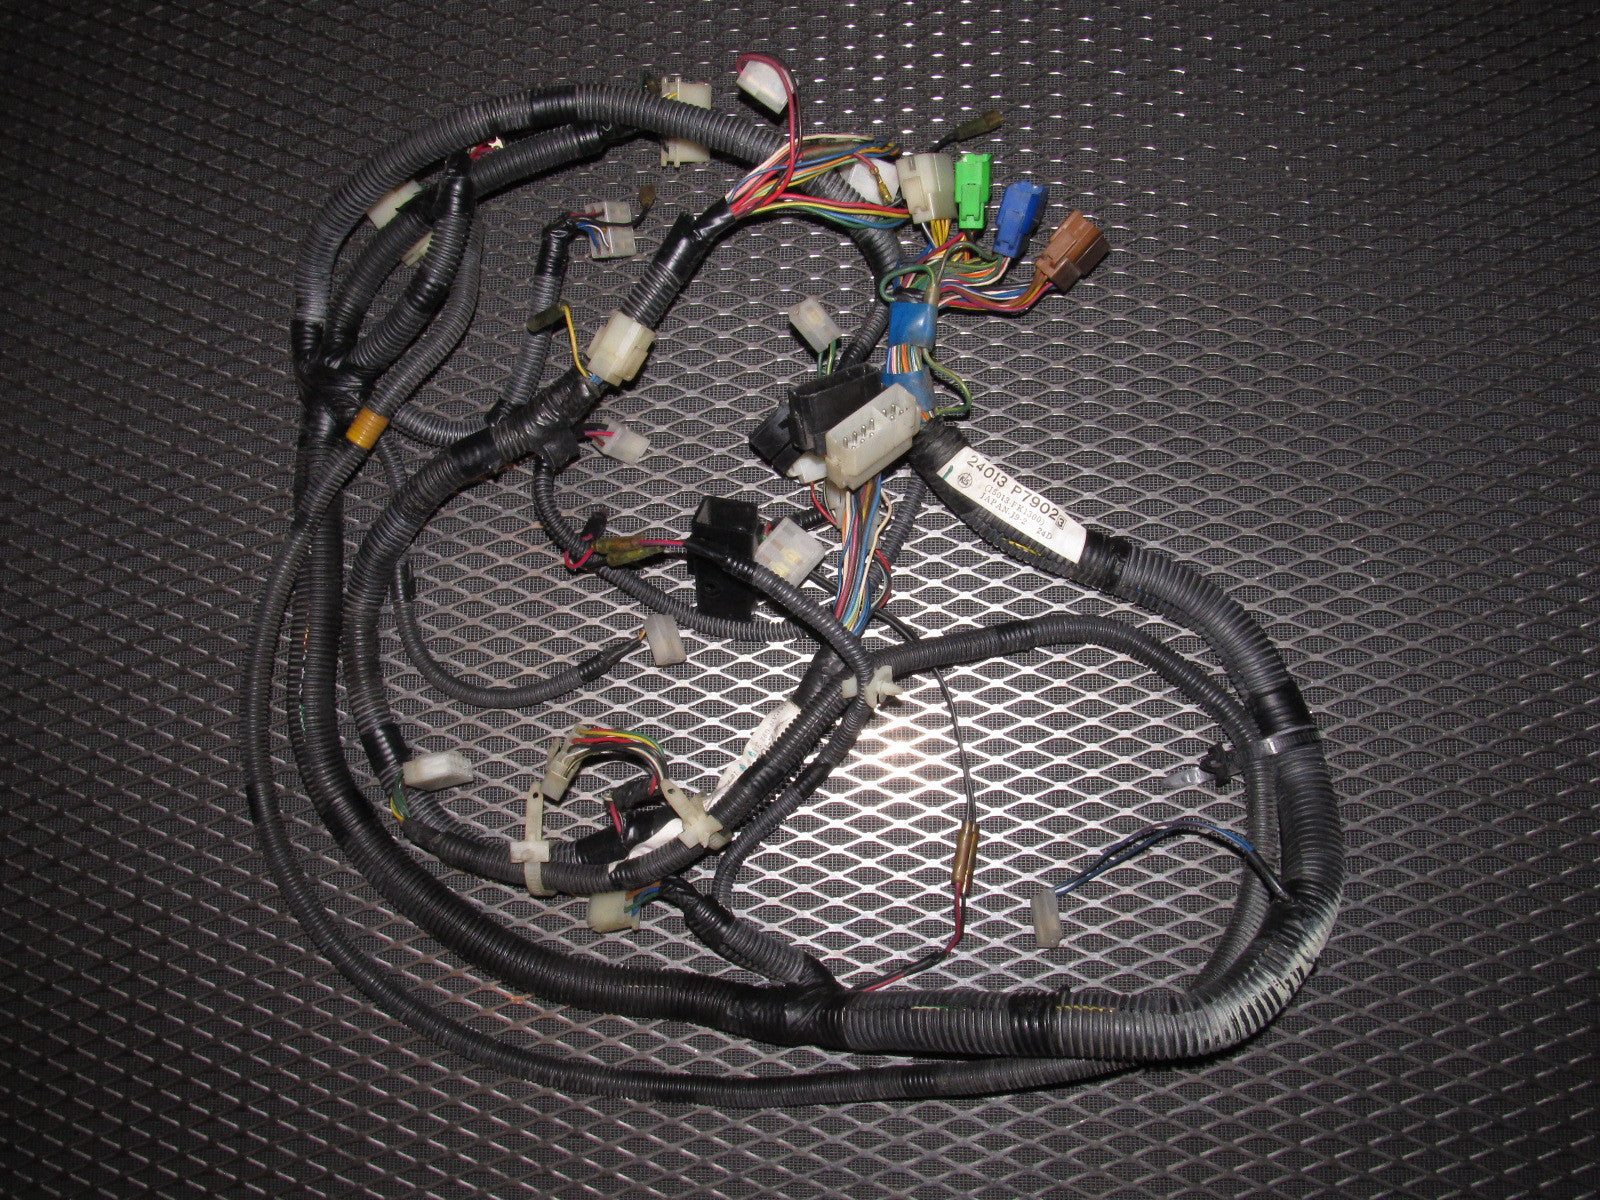 IMG_9266_c28d5520 3461 4704 8126 028d0692a504?v=1450230630 81 82 83 datsun 280zx oem l28e a t engine wiring harness set 280z wiring harness at bayanpartner.co